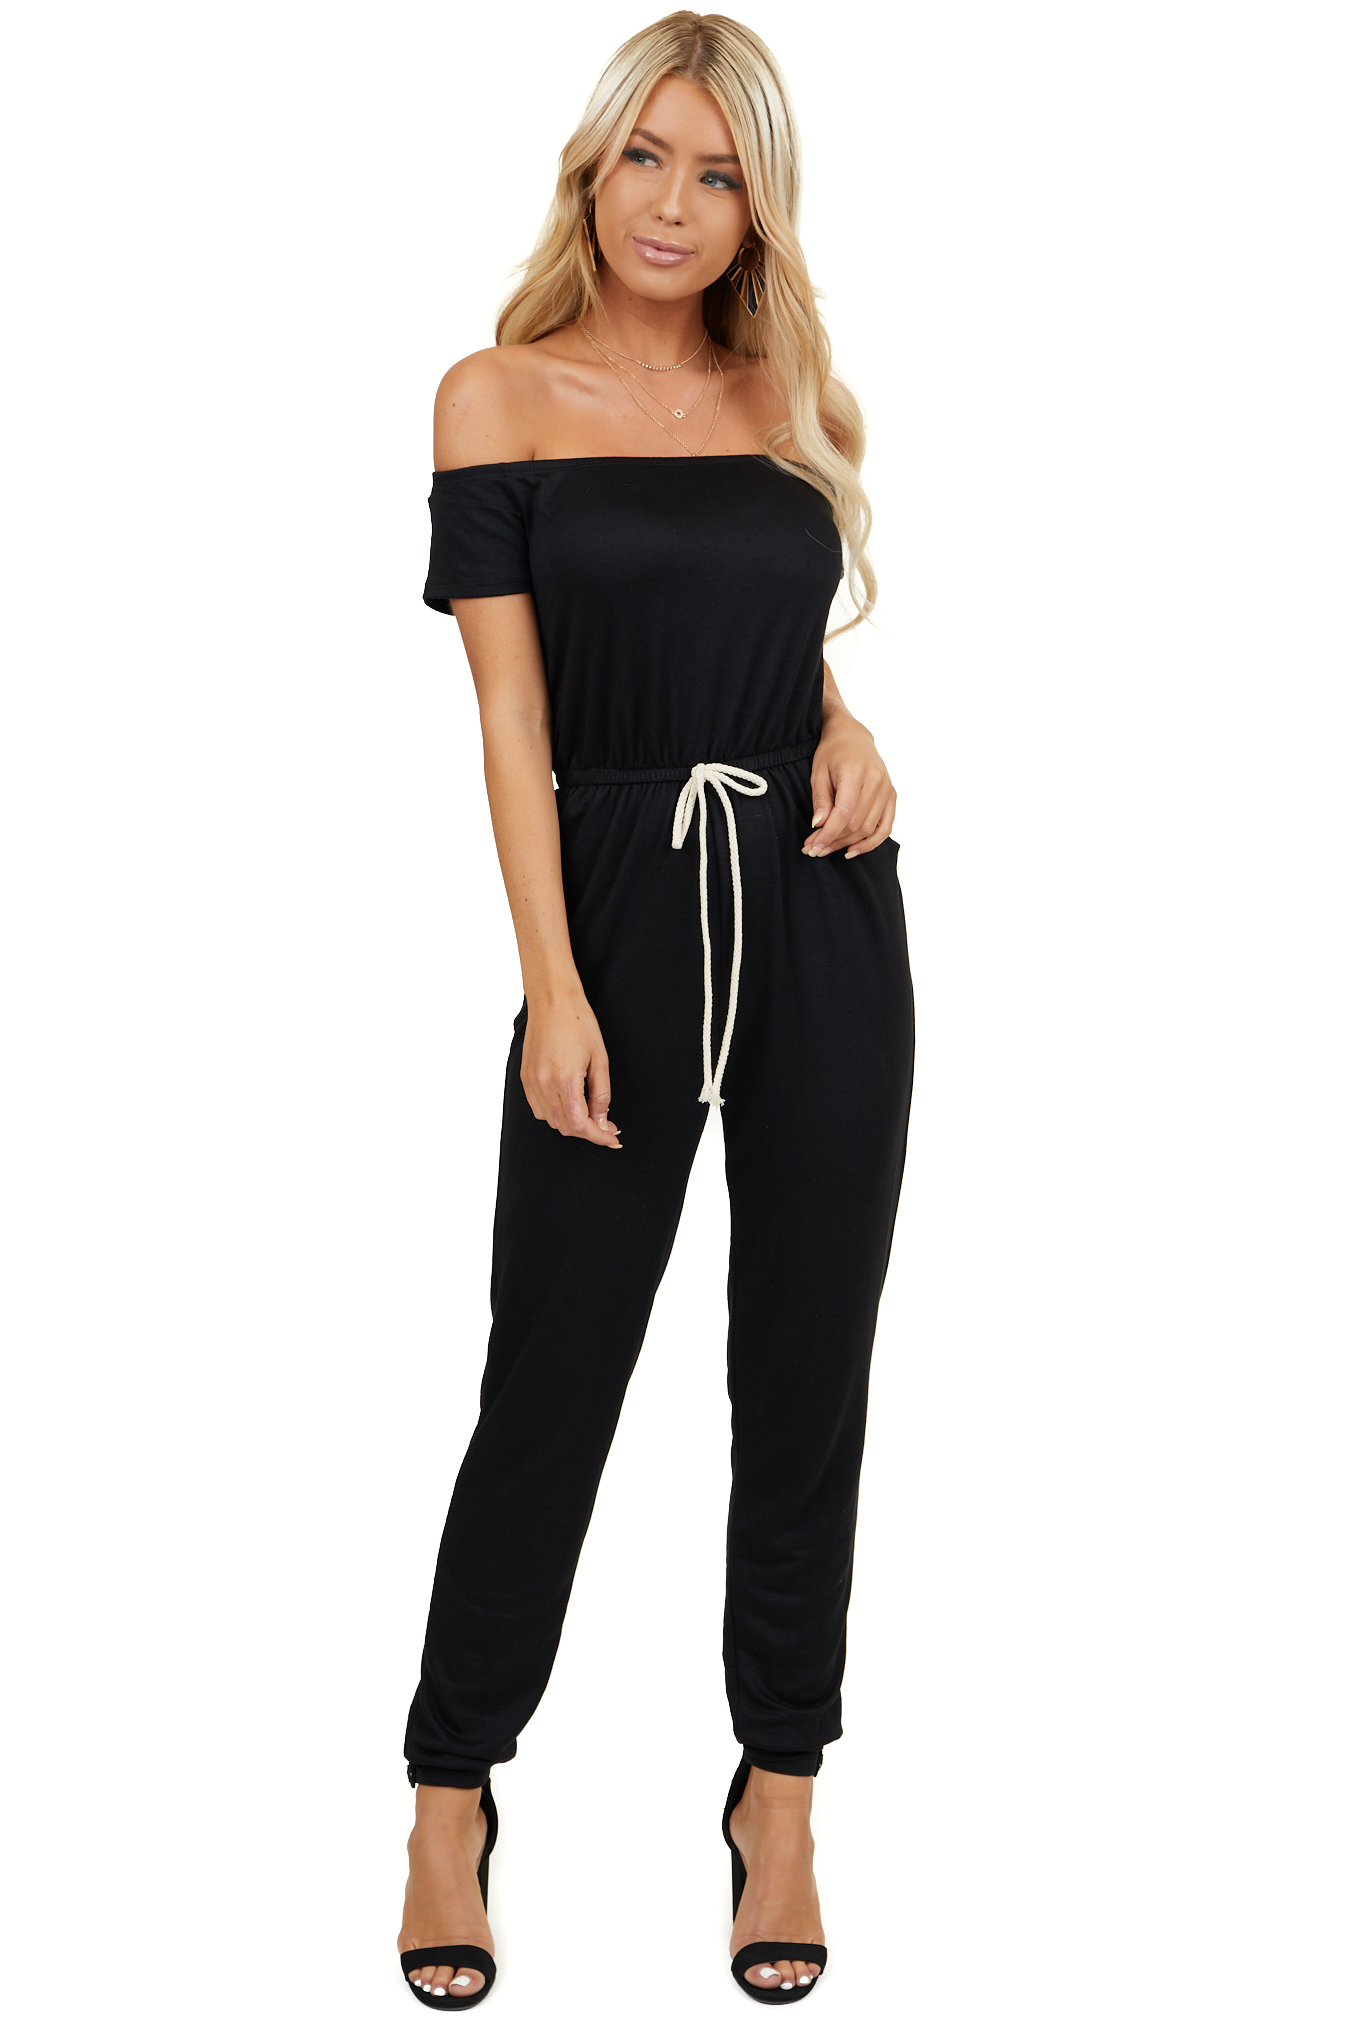 Black Off Shoulder Jumpsuit with Waist Tie and Pockets